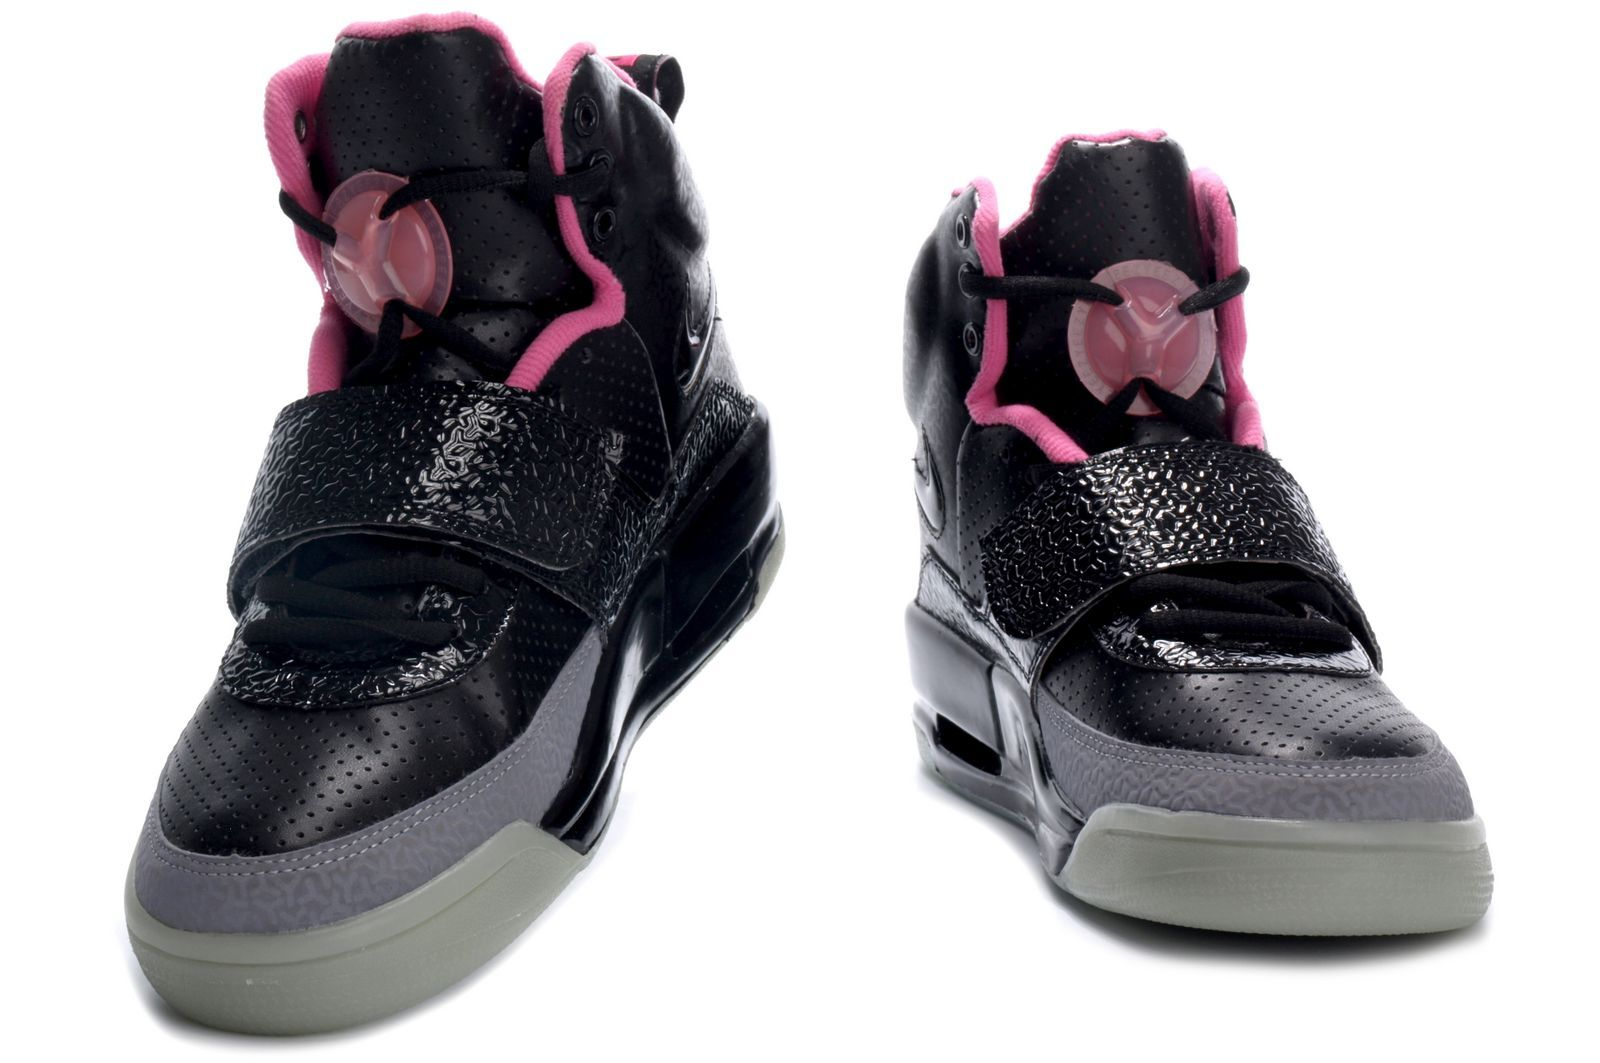 best service 3cc0e a13d7 Nike Air Yeezy Pink Black Grey Glow In The Dark Womens Shoes  Airyeezer-Glow-W008 - 58.00  Nike Shoes - Nike air jordans shoes,air  max,air force,nike ...